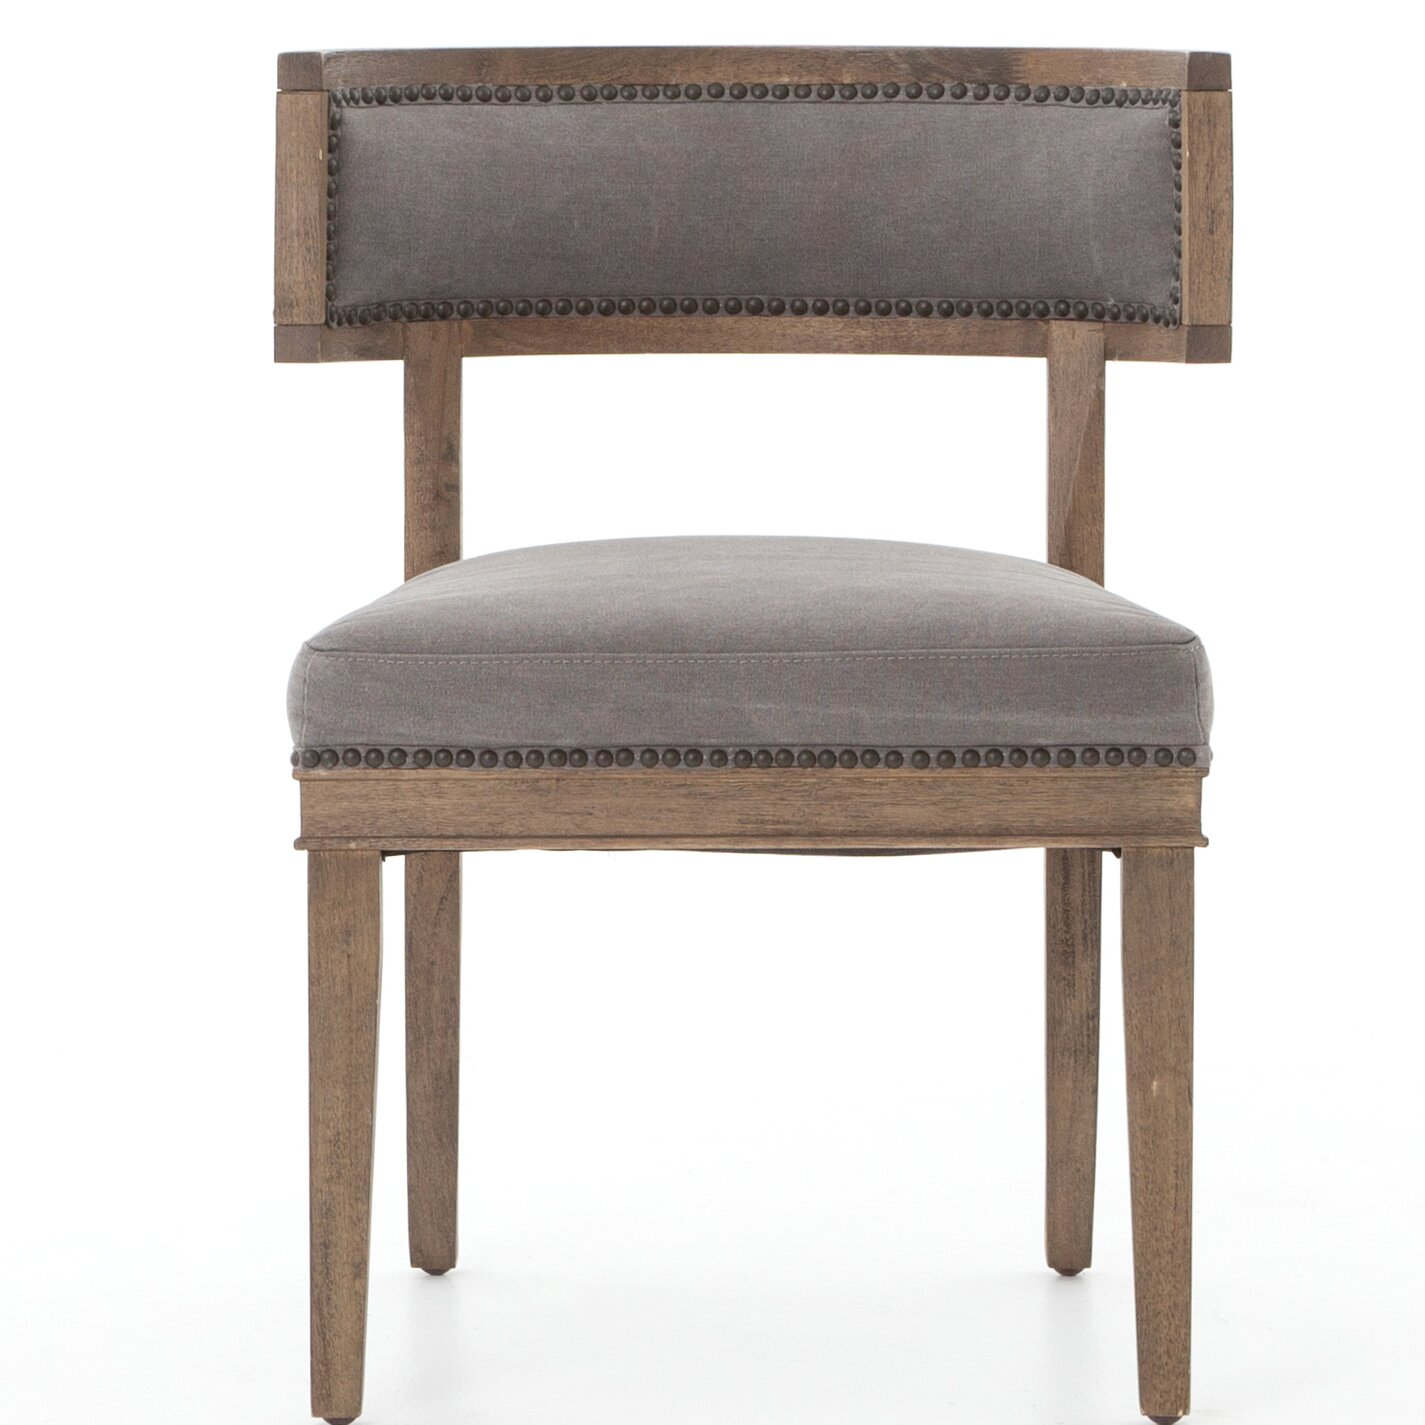 Laurel foundry modern farmhouse abbigail dining side chair for Modern farmhouse dining chairs